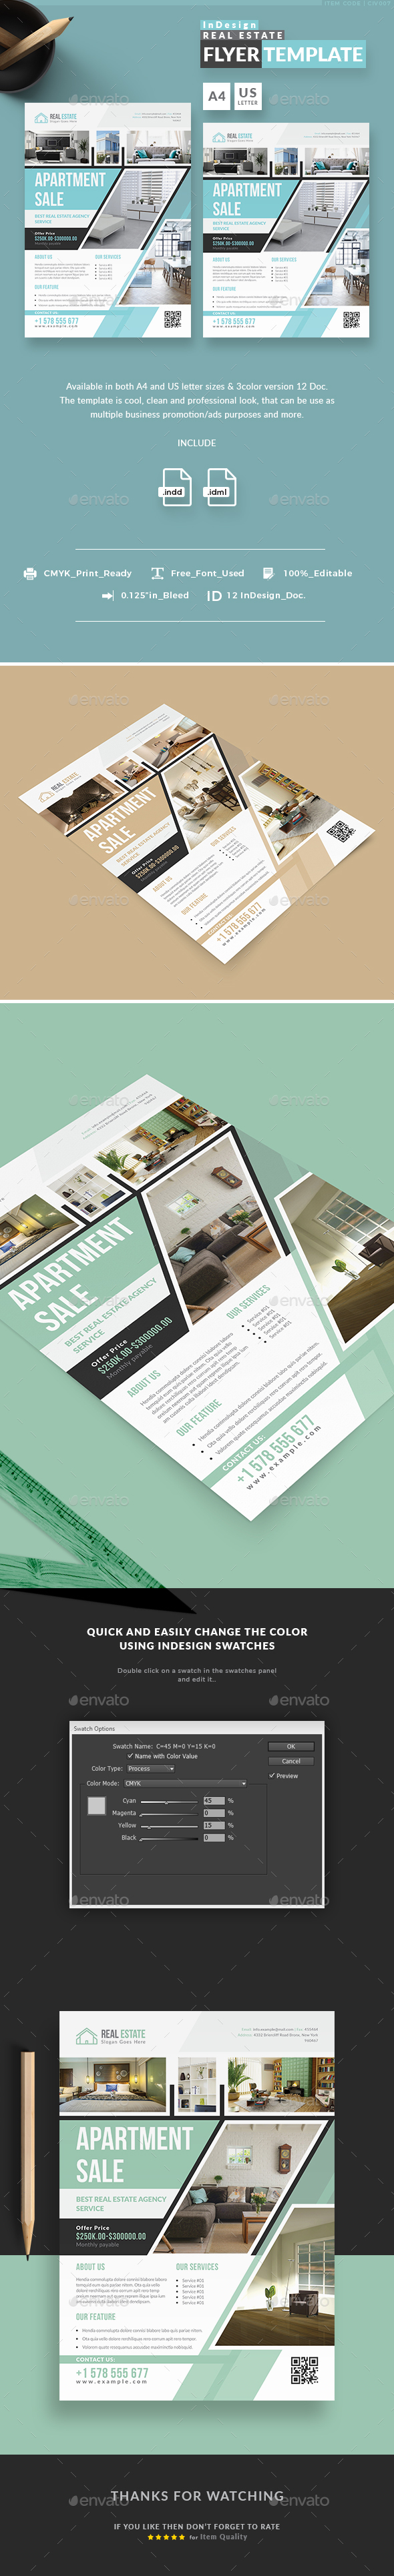 Real Estate InDesign Flyer Templates - Corporate Flyers